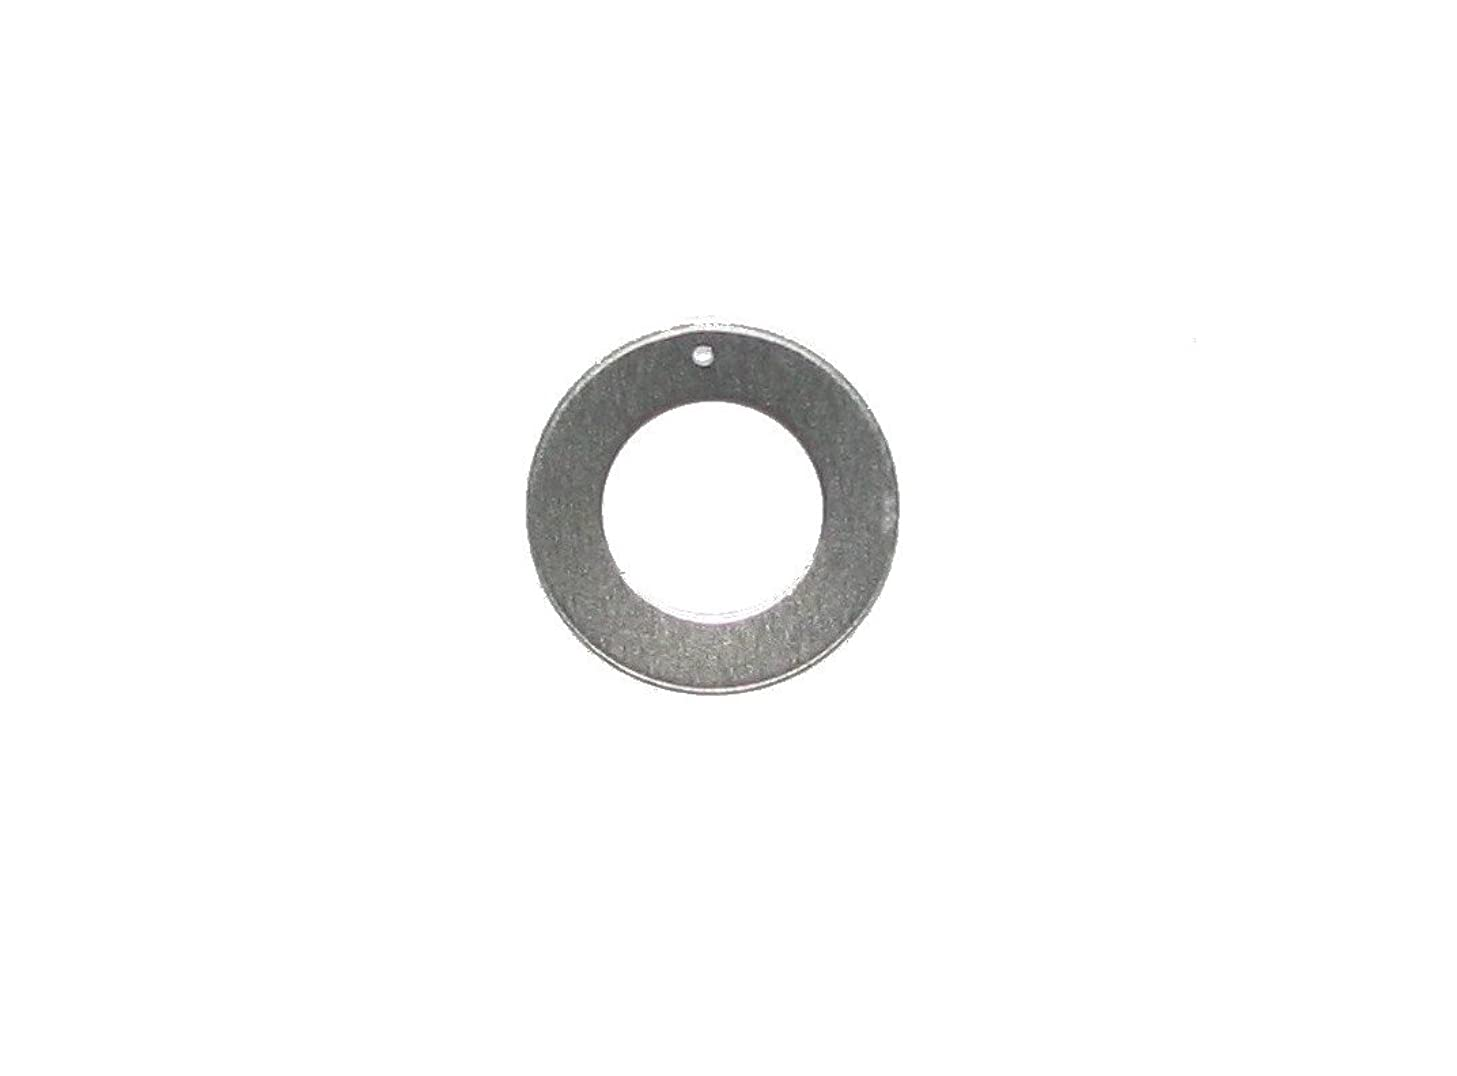 RMP Stamping Blanks, 1 1/4 Inch Round Washer with 3/4 Inch Center with Hole, Aluminum .063